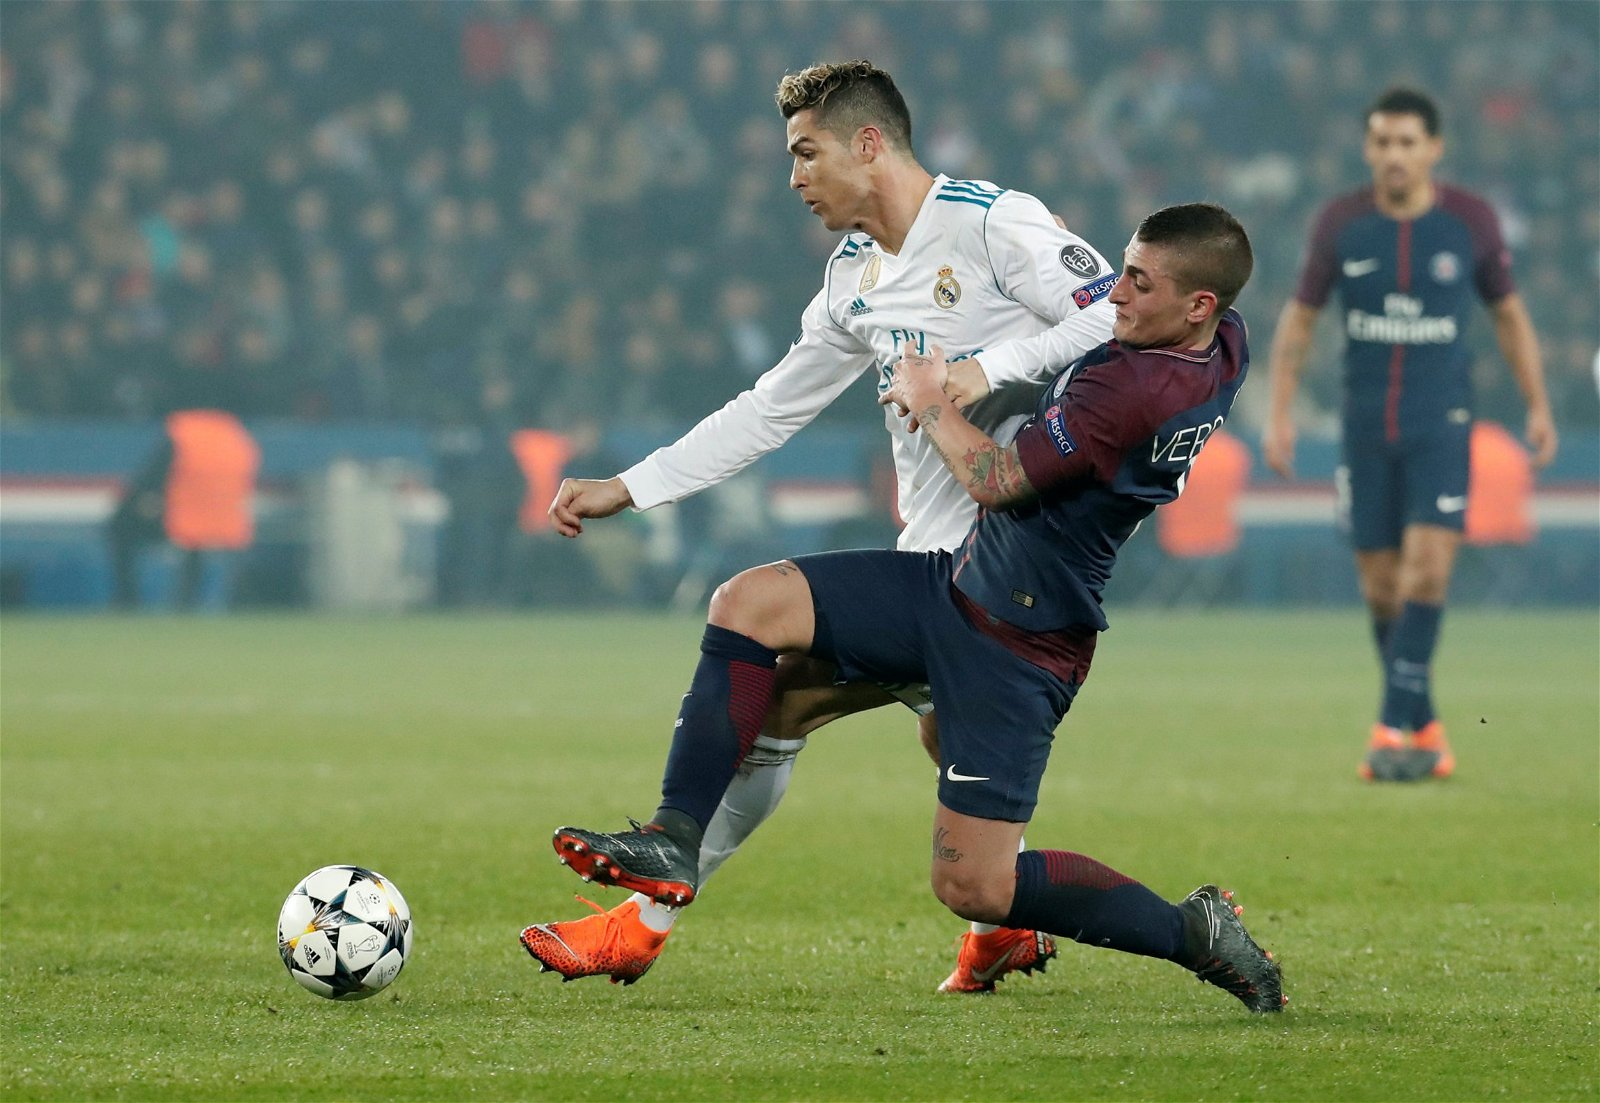 West Ham Interest In Marco Verratti Raises Question Marks Over Manuel Pellegrini Footballfancast Com Fulham live stream online if you are registered member of bet365, the leading online betting company that has streaming coverage for more than. west ham interest in marco verratti